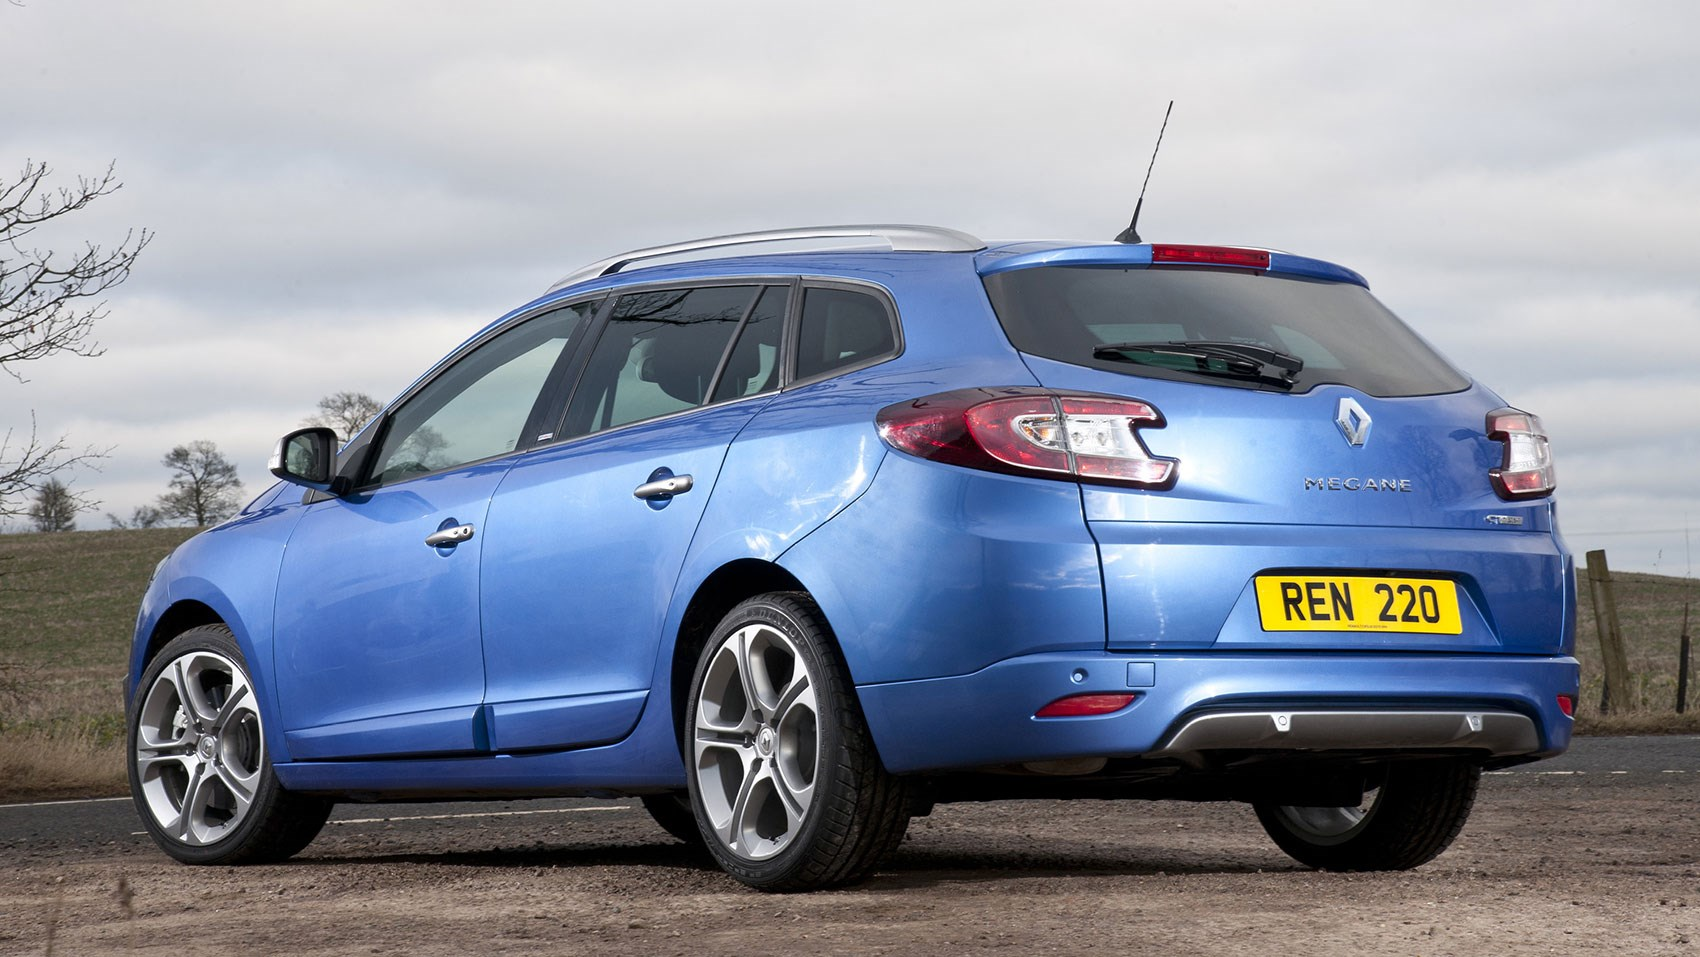 Renault megane renaultsport gt 220 coupe 2015 review car magazine - Renault megane coupe 2015 ...